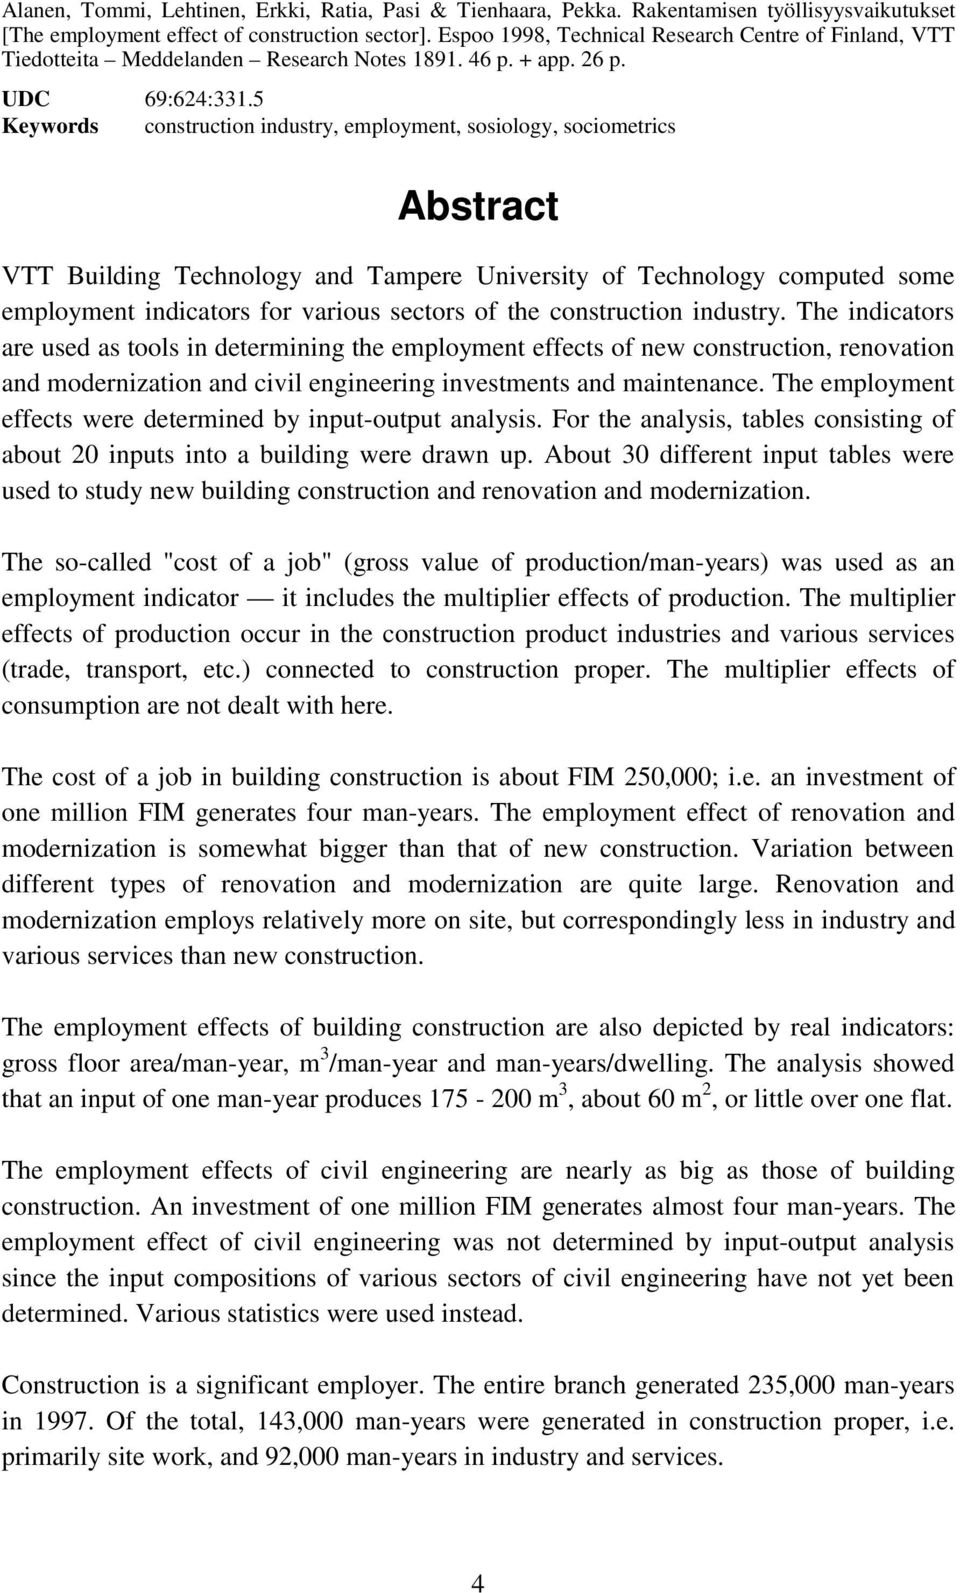 5 Keywords construction industry, employment, sosiology, sociometrics Abstract VTT Building Technology and Tampere University of Technology computed some employment indicators for various sectors of